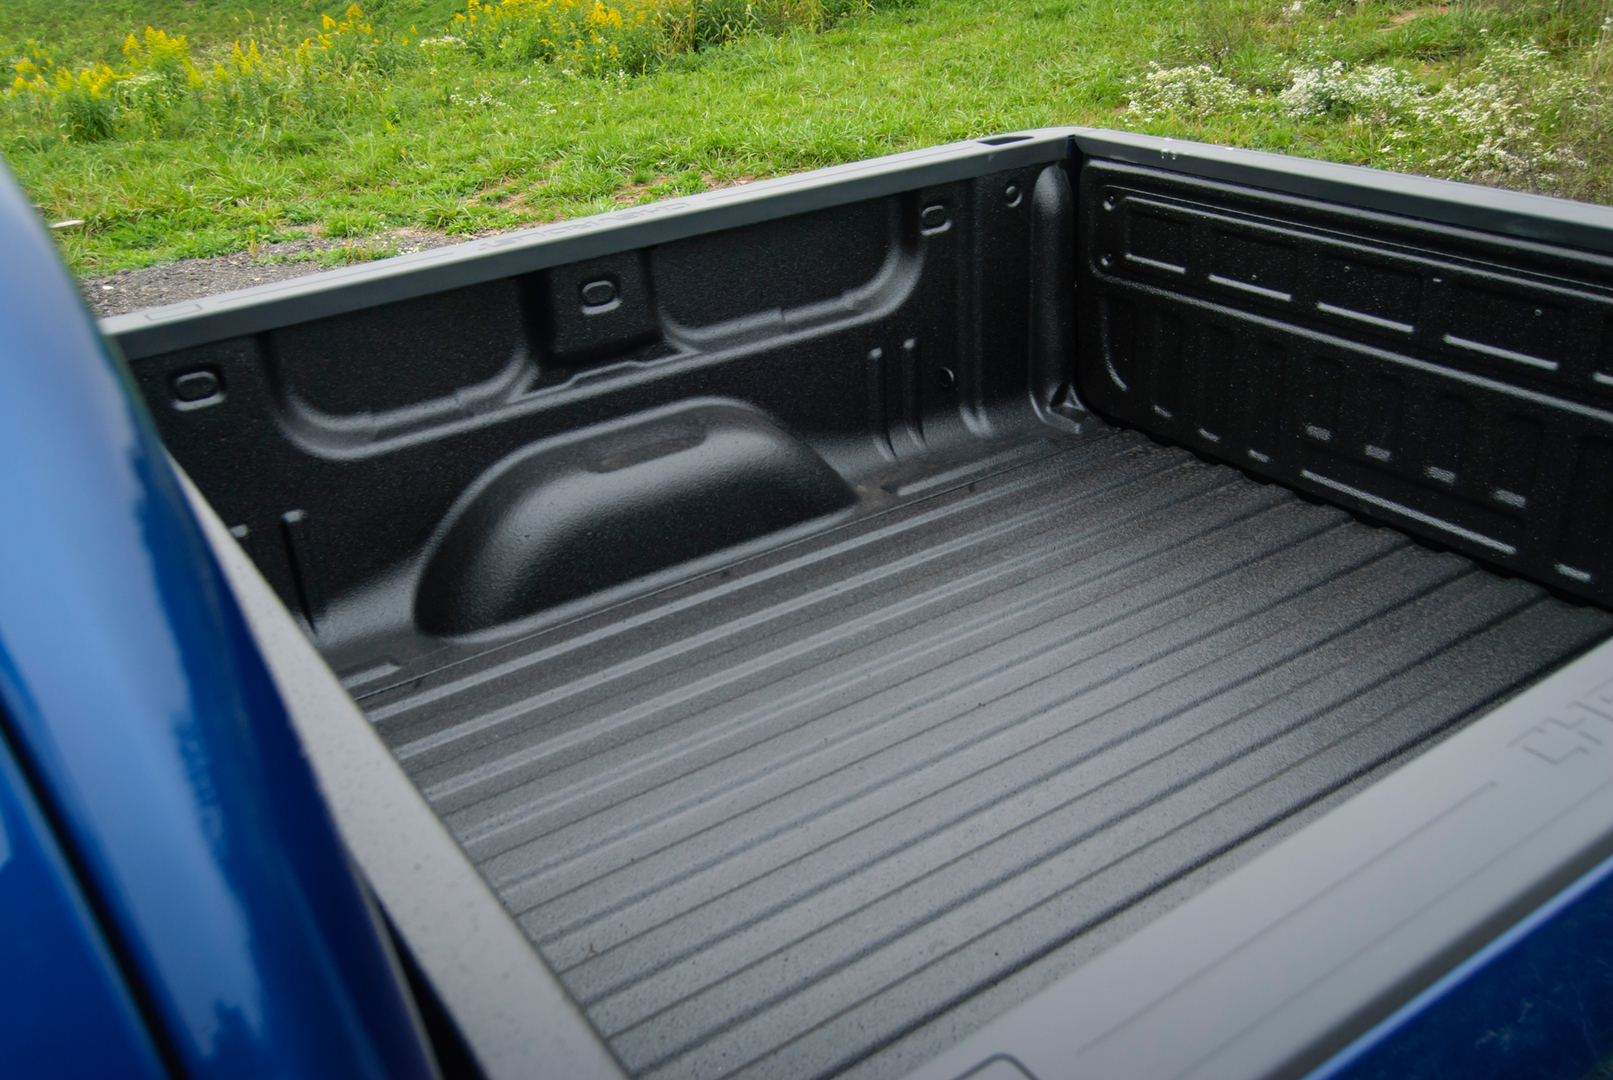 The rest of your truck is tough so the bedliner should be too